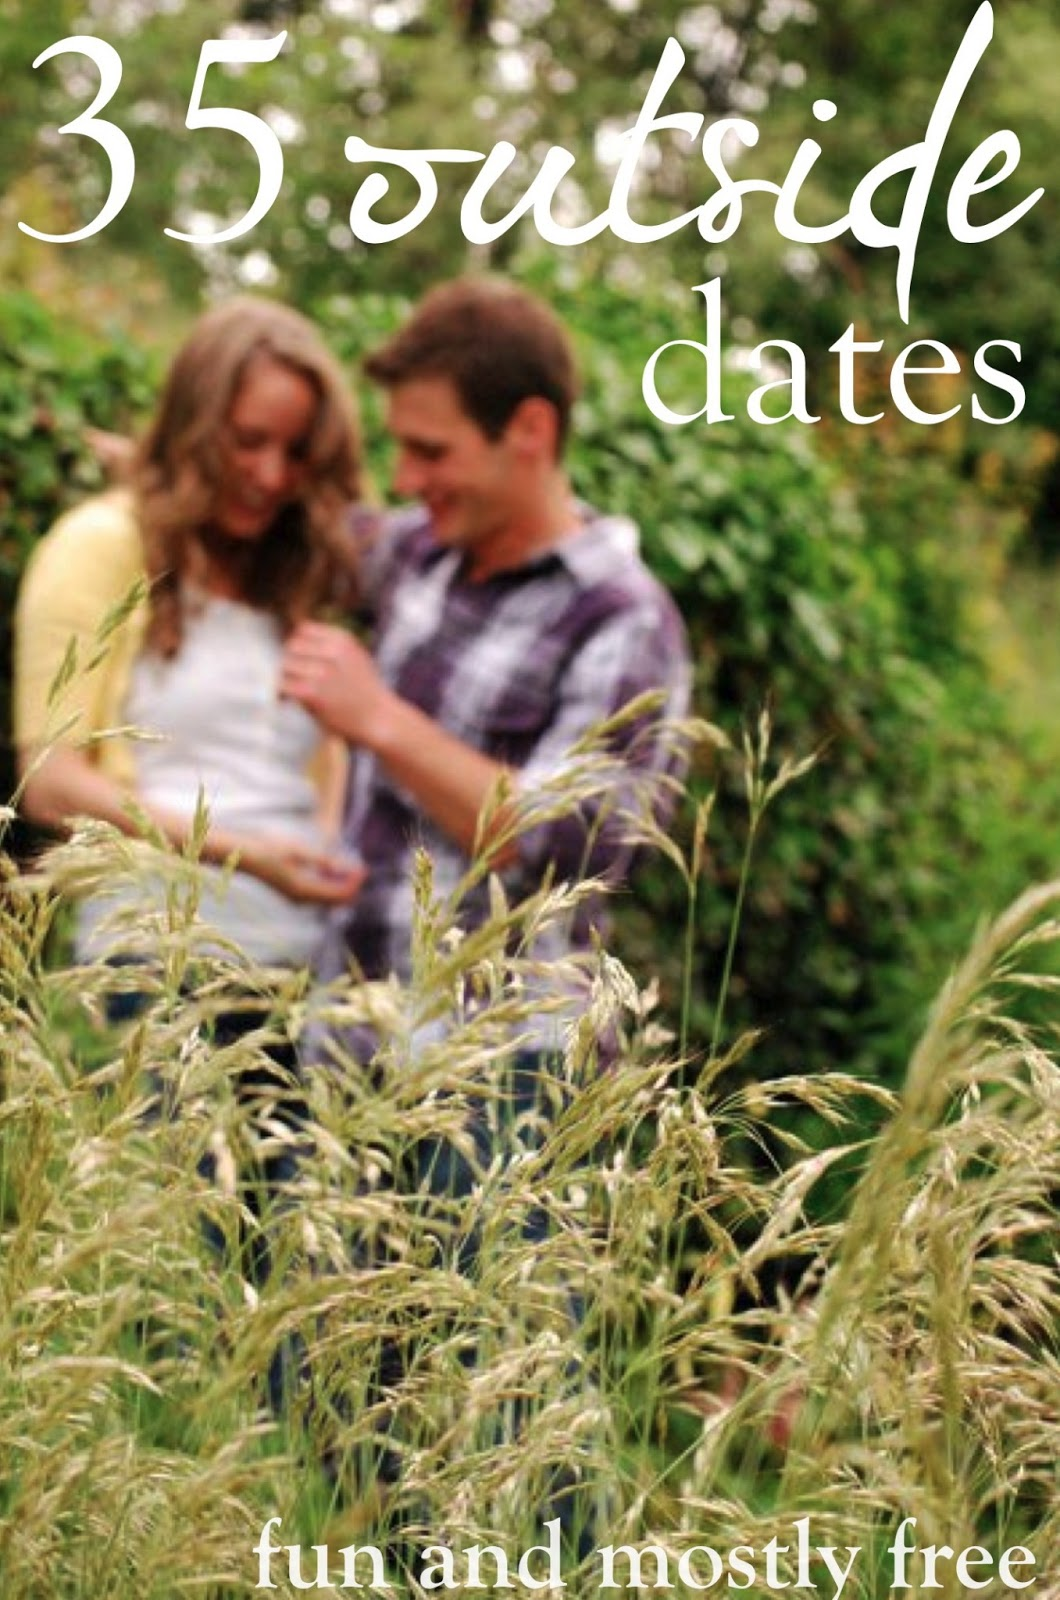 35 Outdoor dates: fun and mostly free